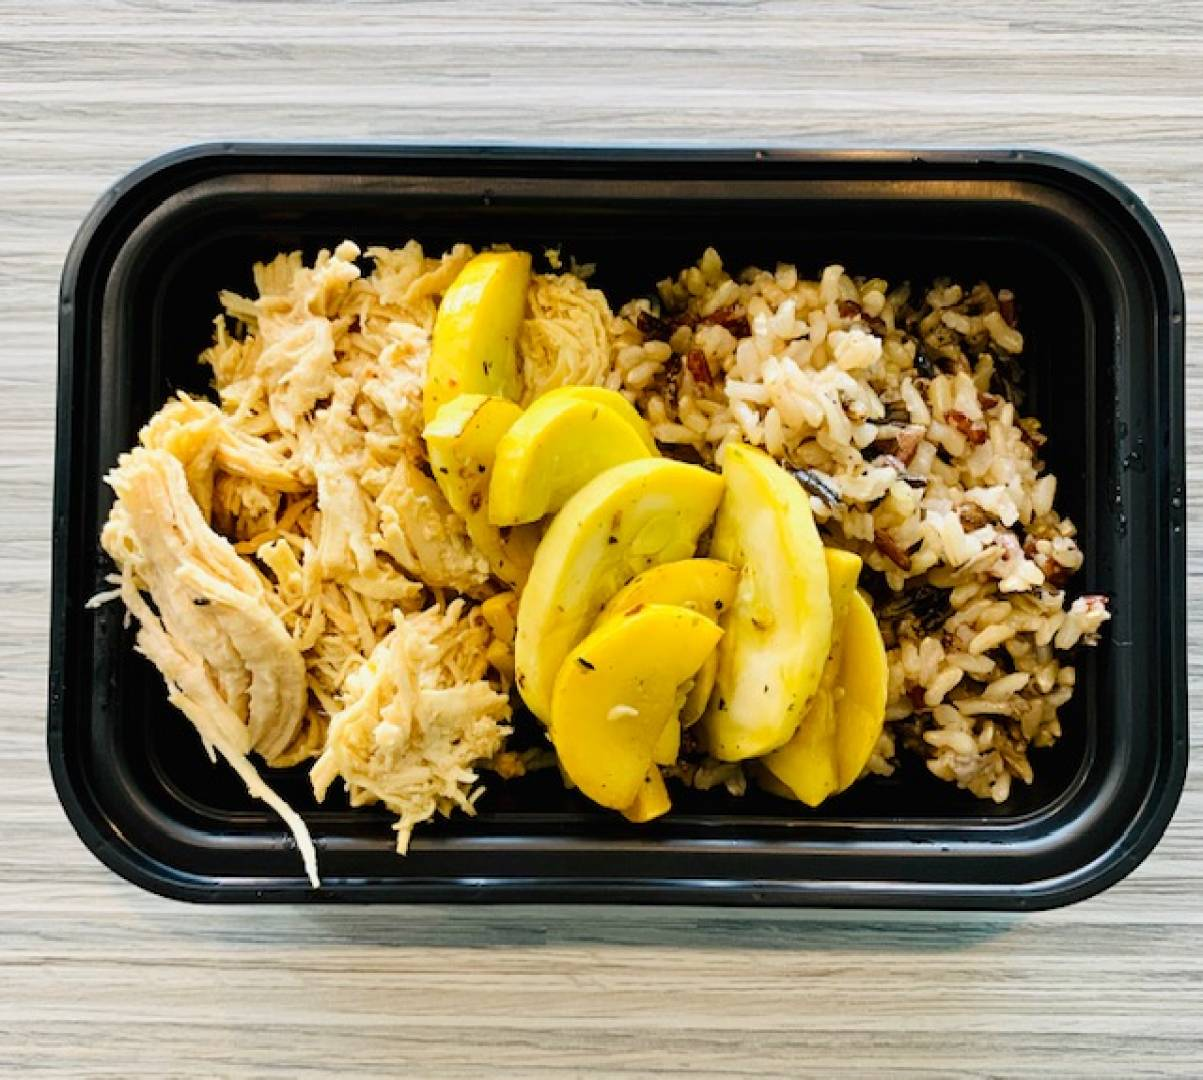 Shredded Chicken, Wild Rice and Squash